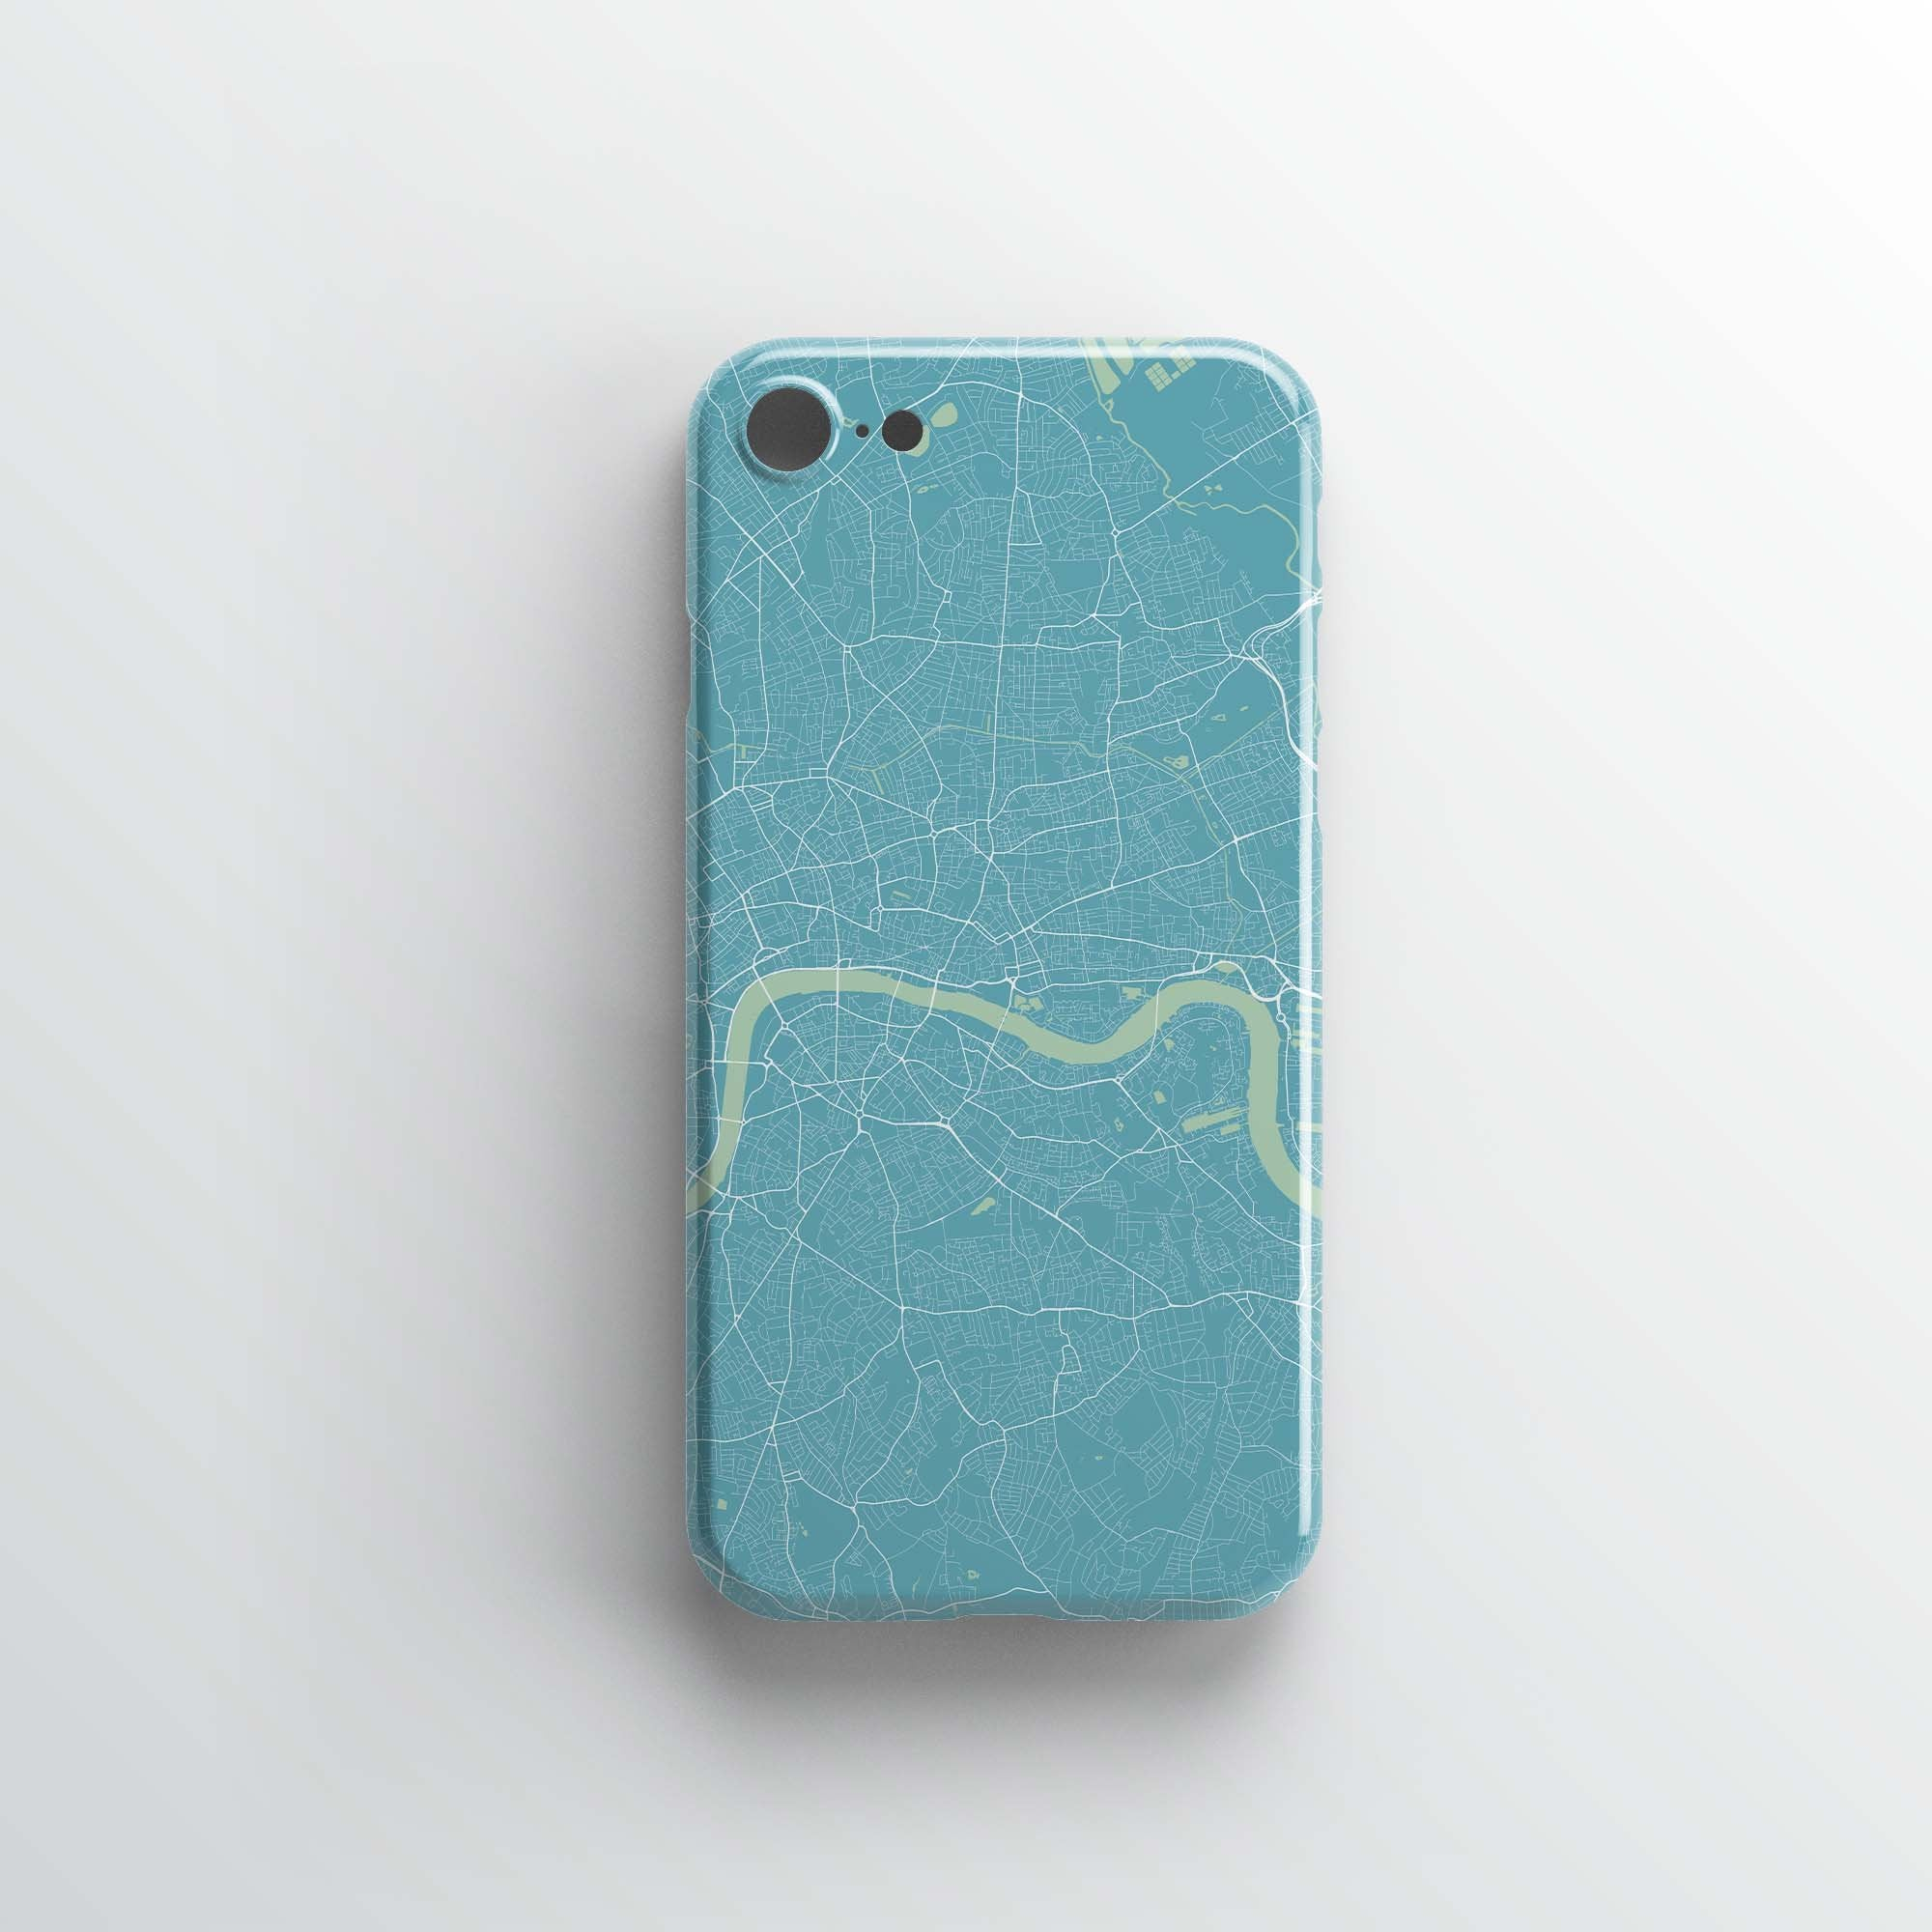 London City iPhone Case